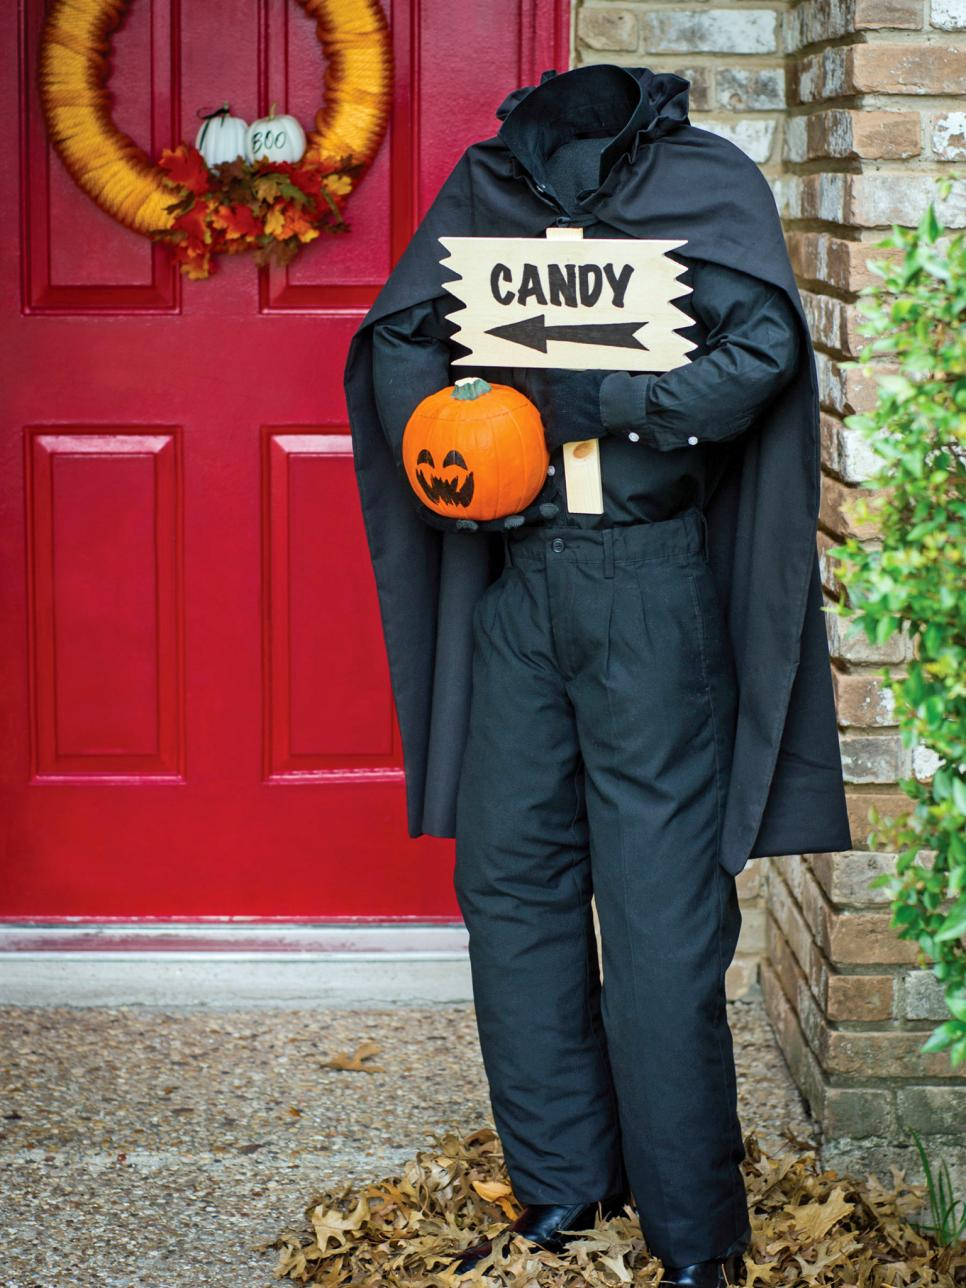 Headless Horseman Halloween Decoration ideas